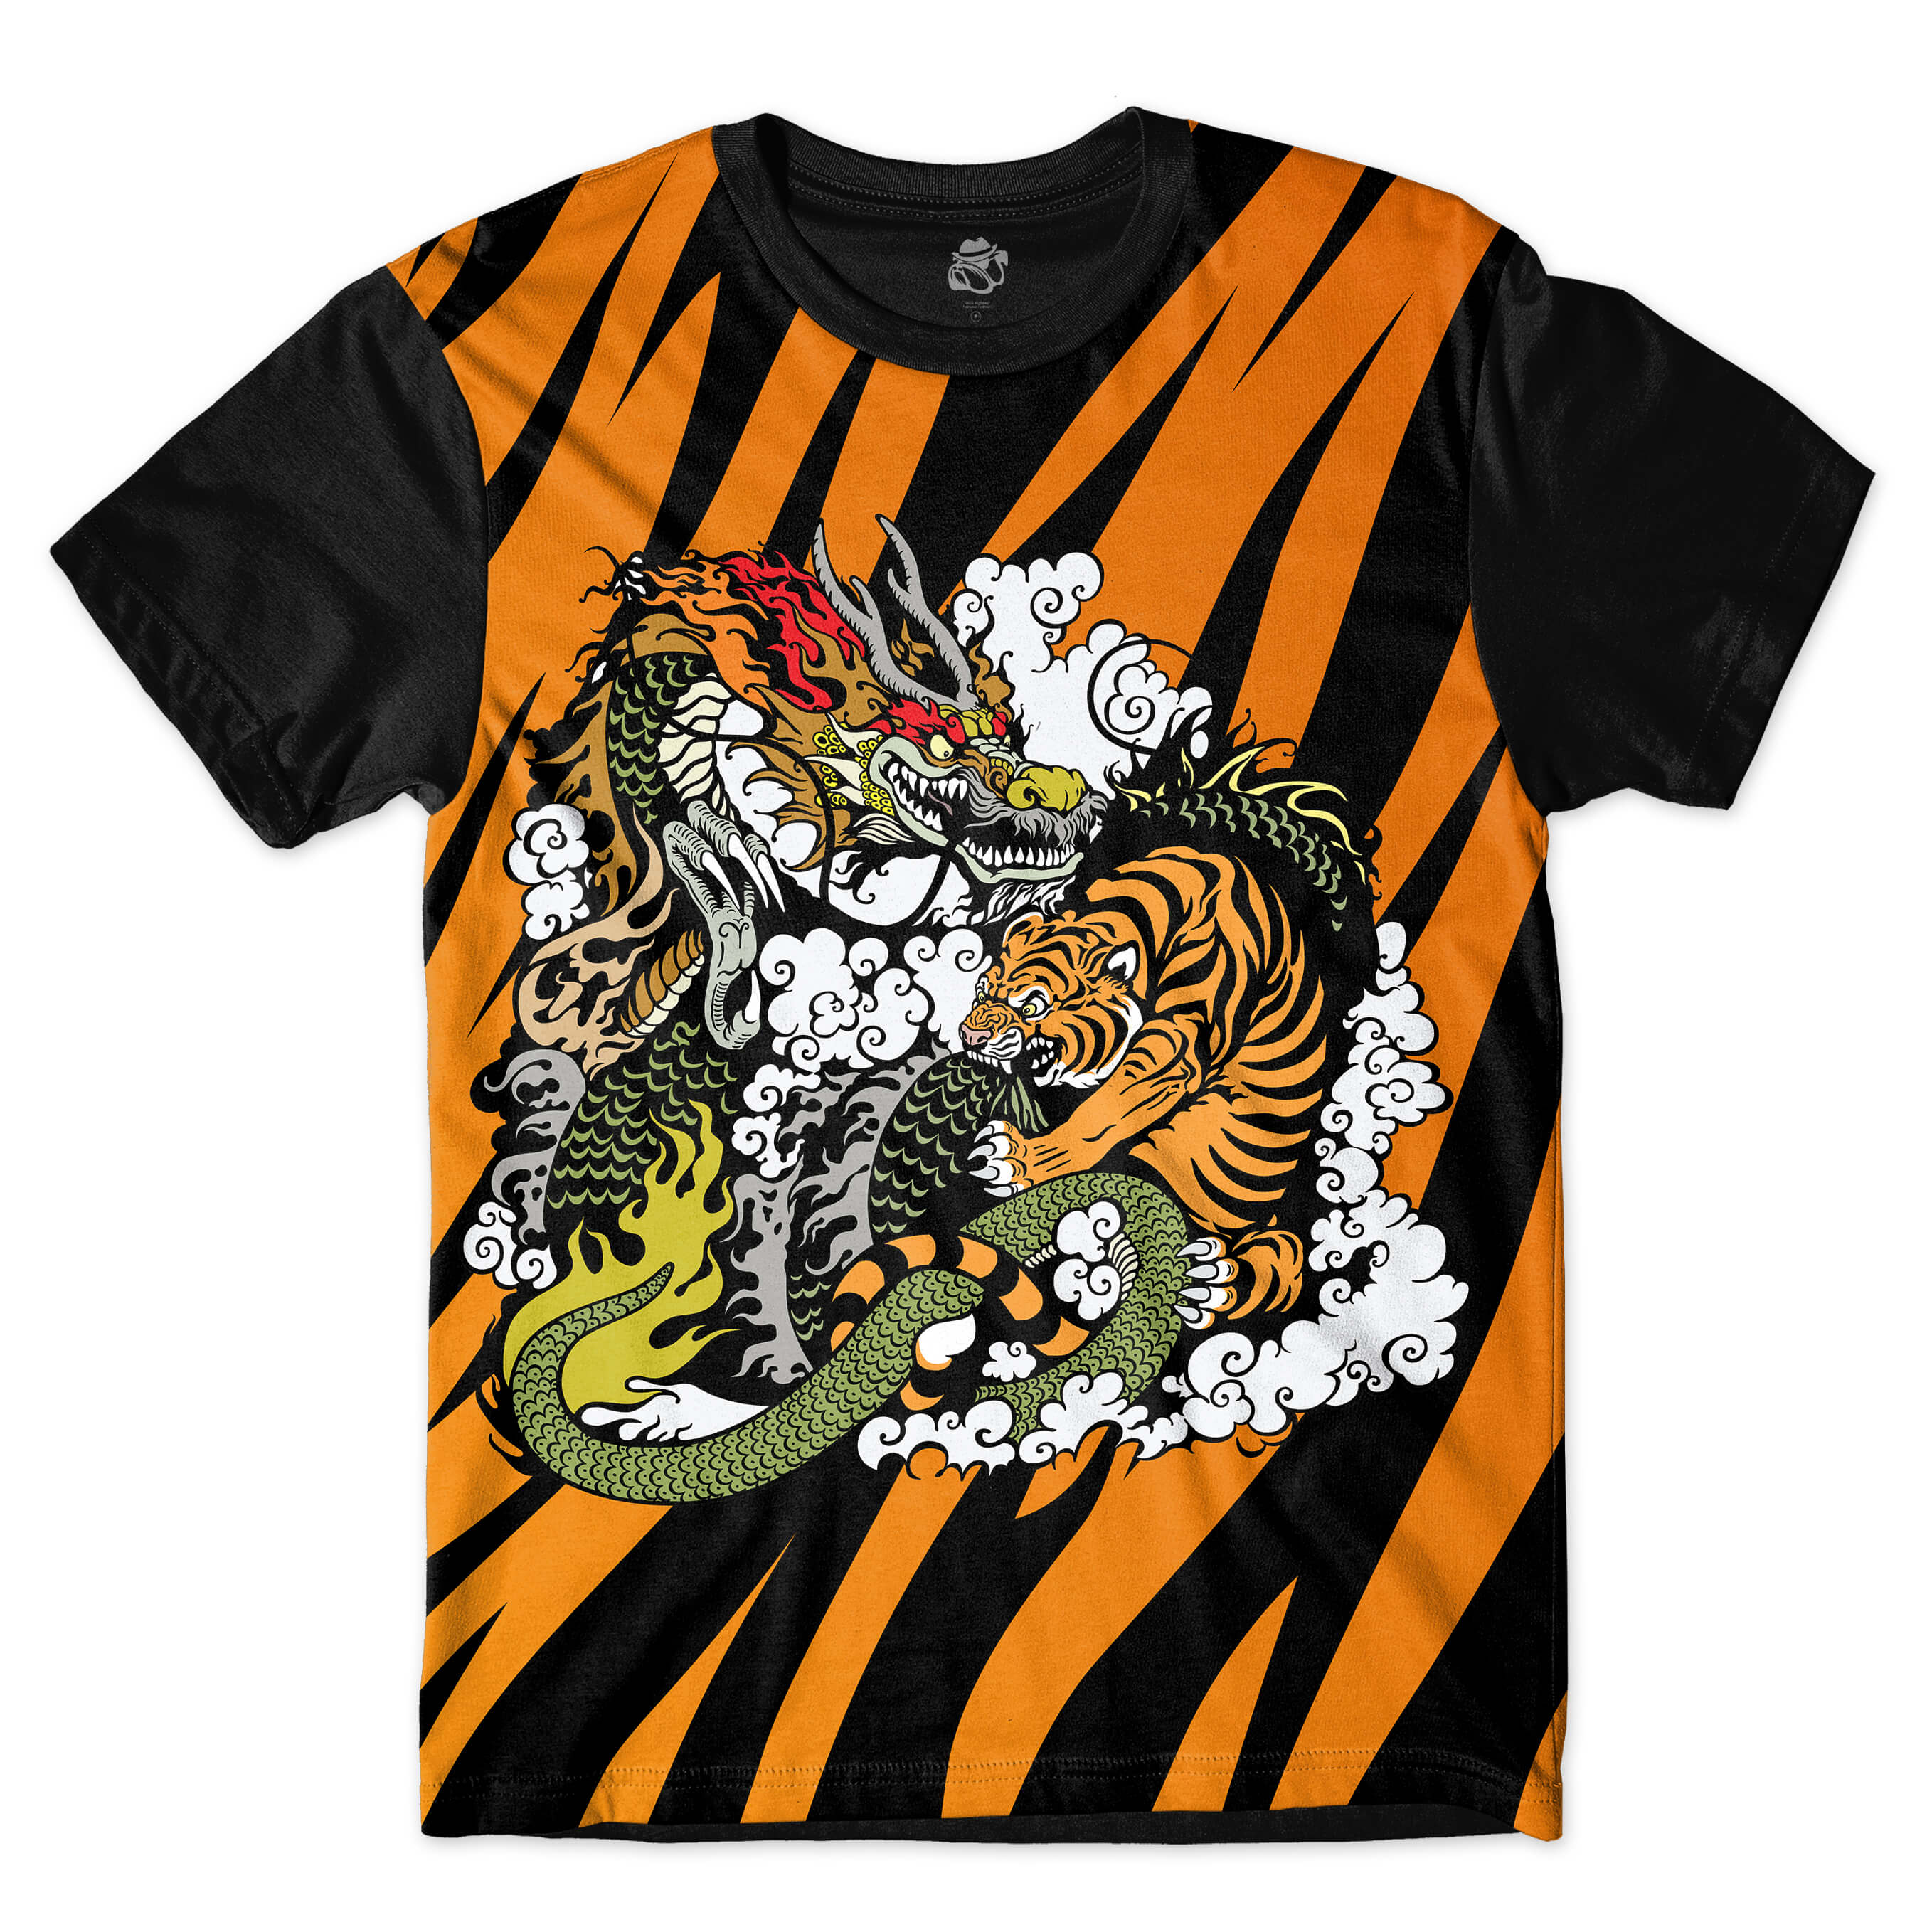 Camiseta BSC Tiger Fight Sublimada Preto/Laranja